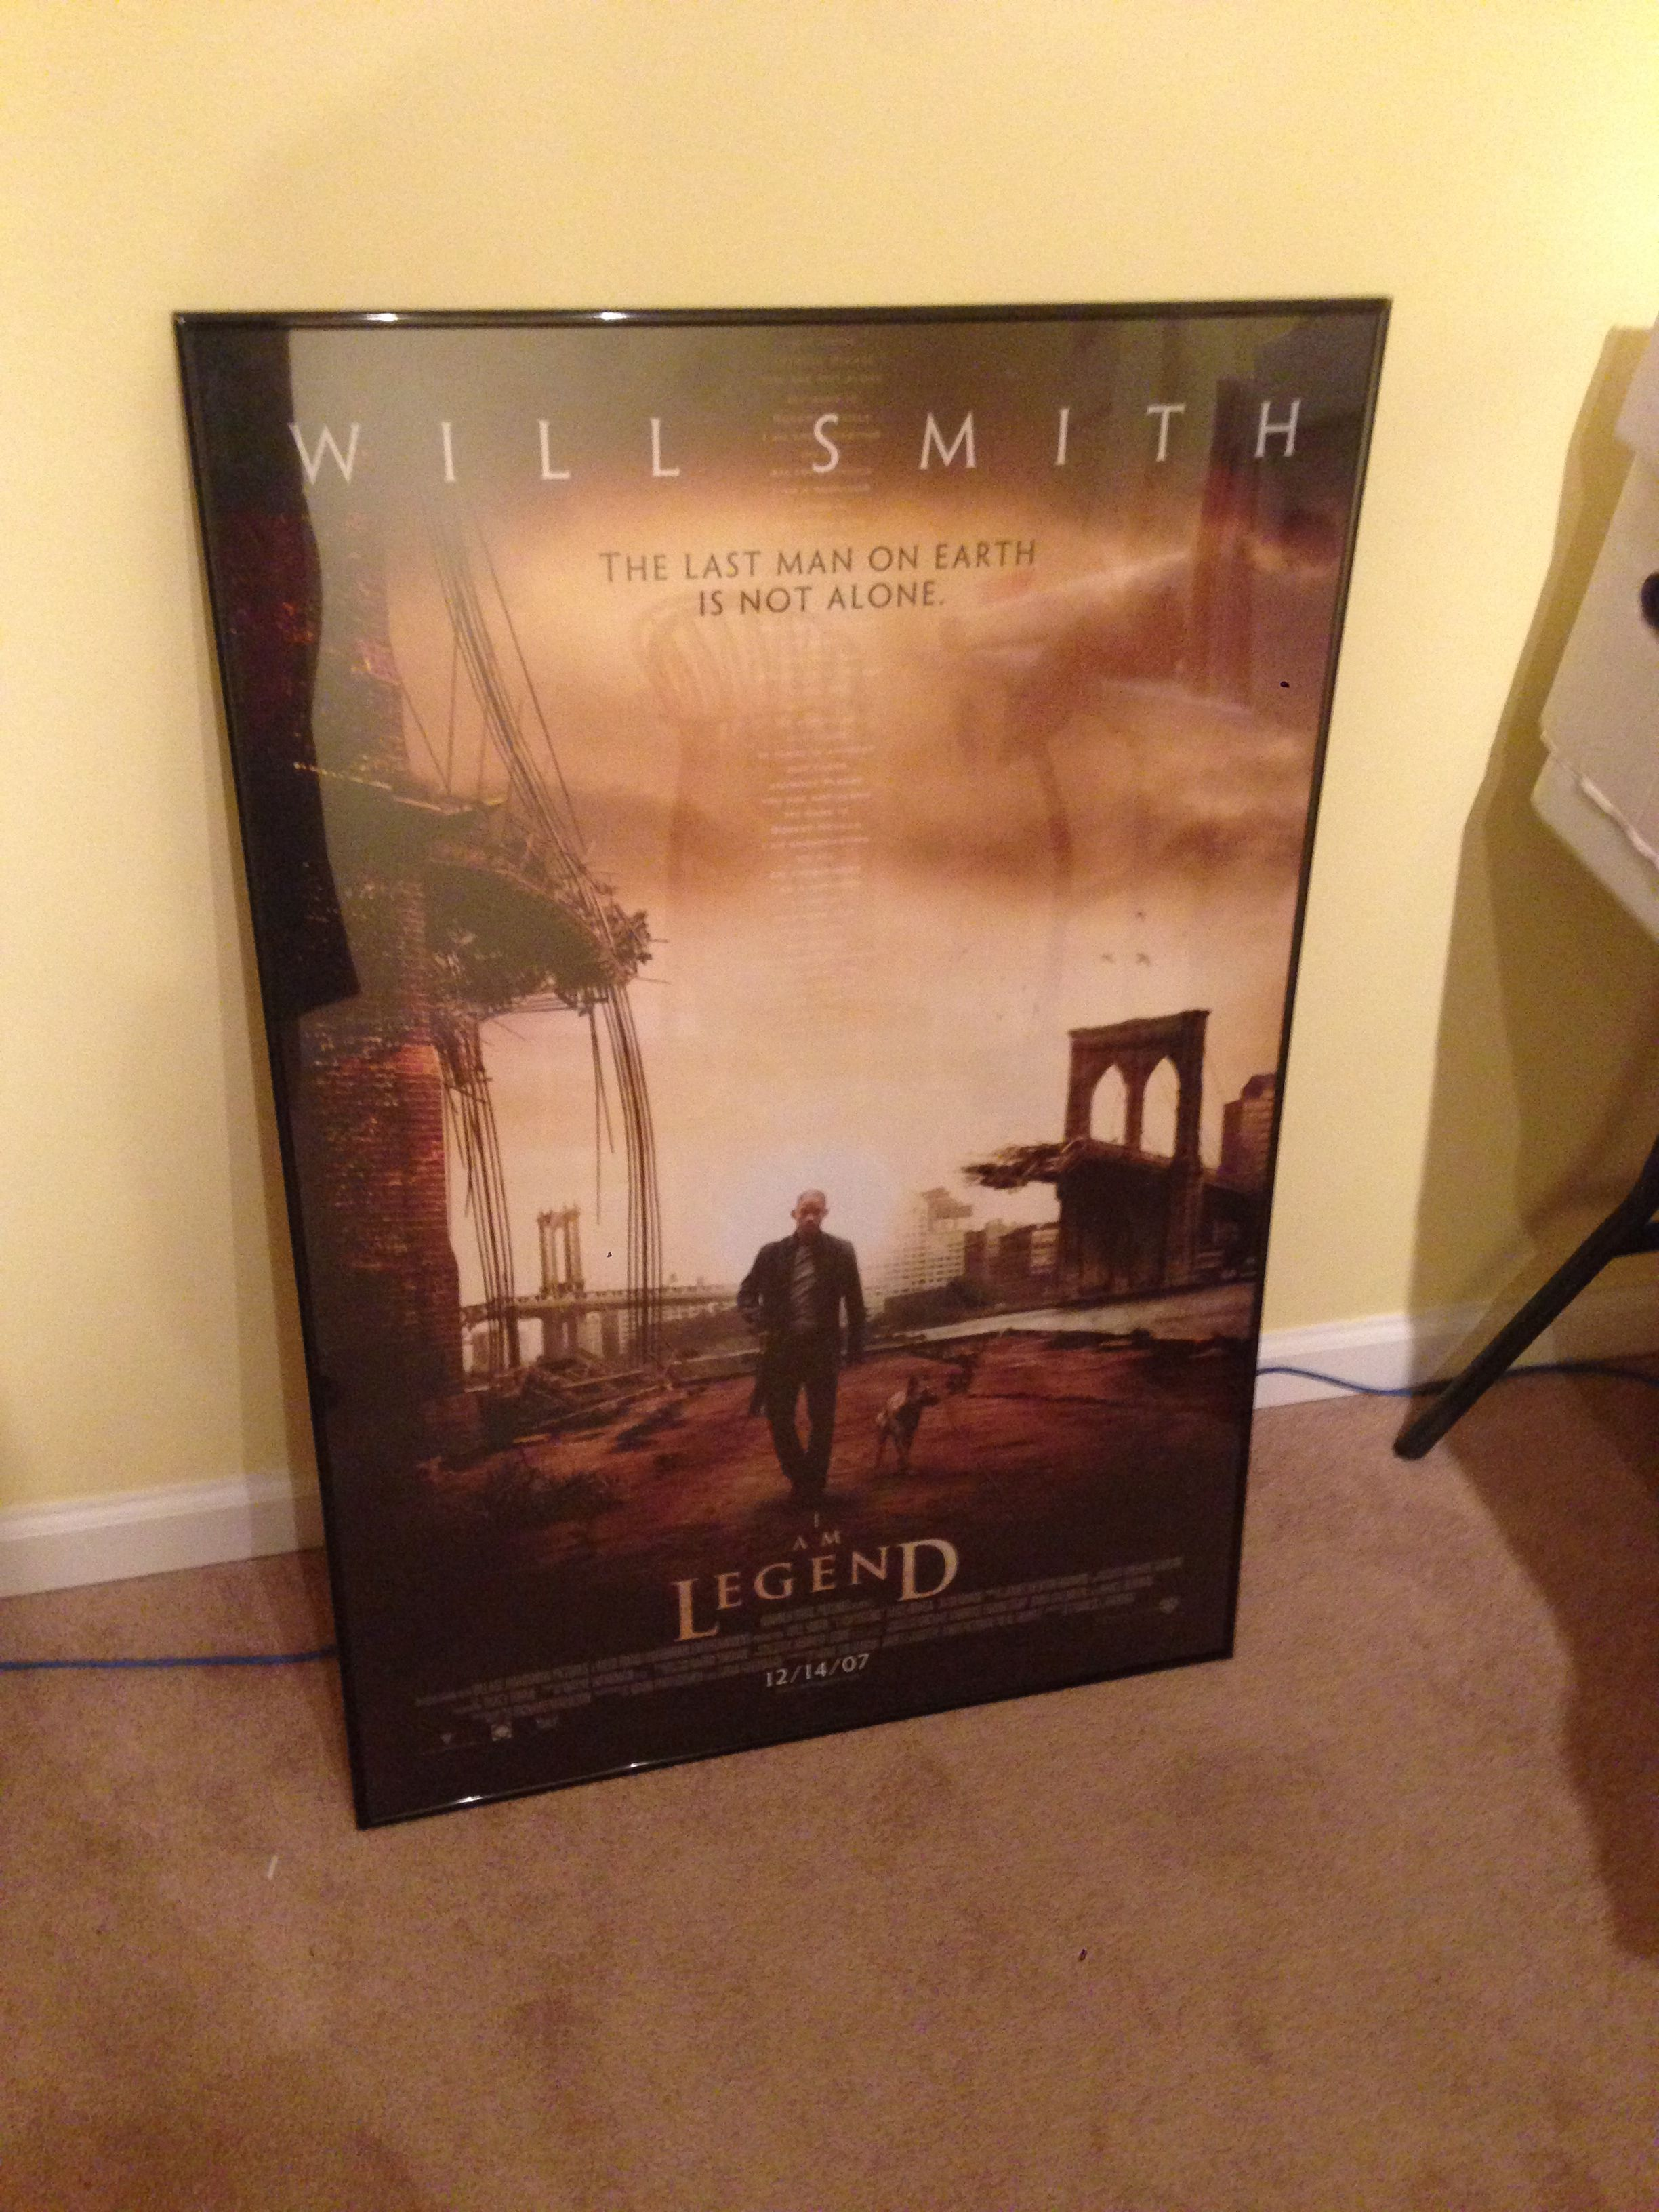 I Am Legend 27x40 Movie Poster My Advice To All There Are Many